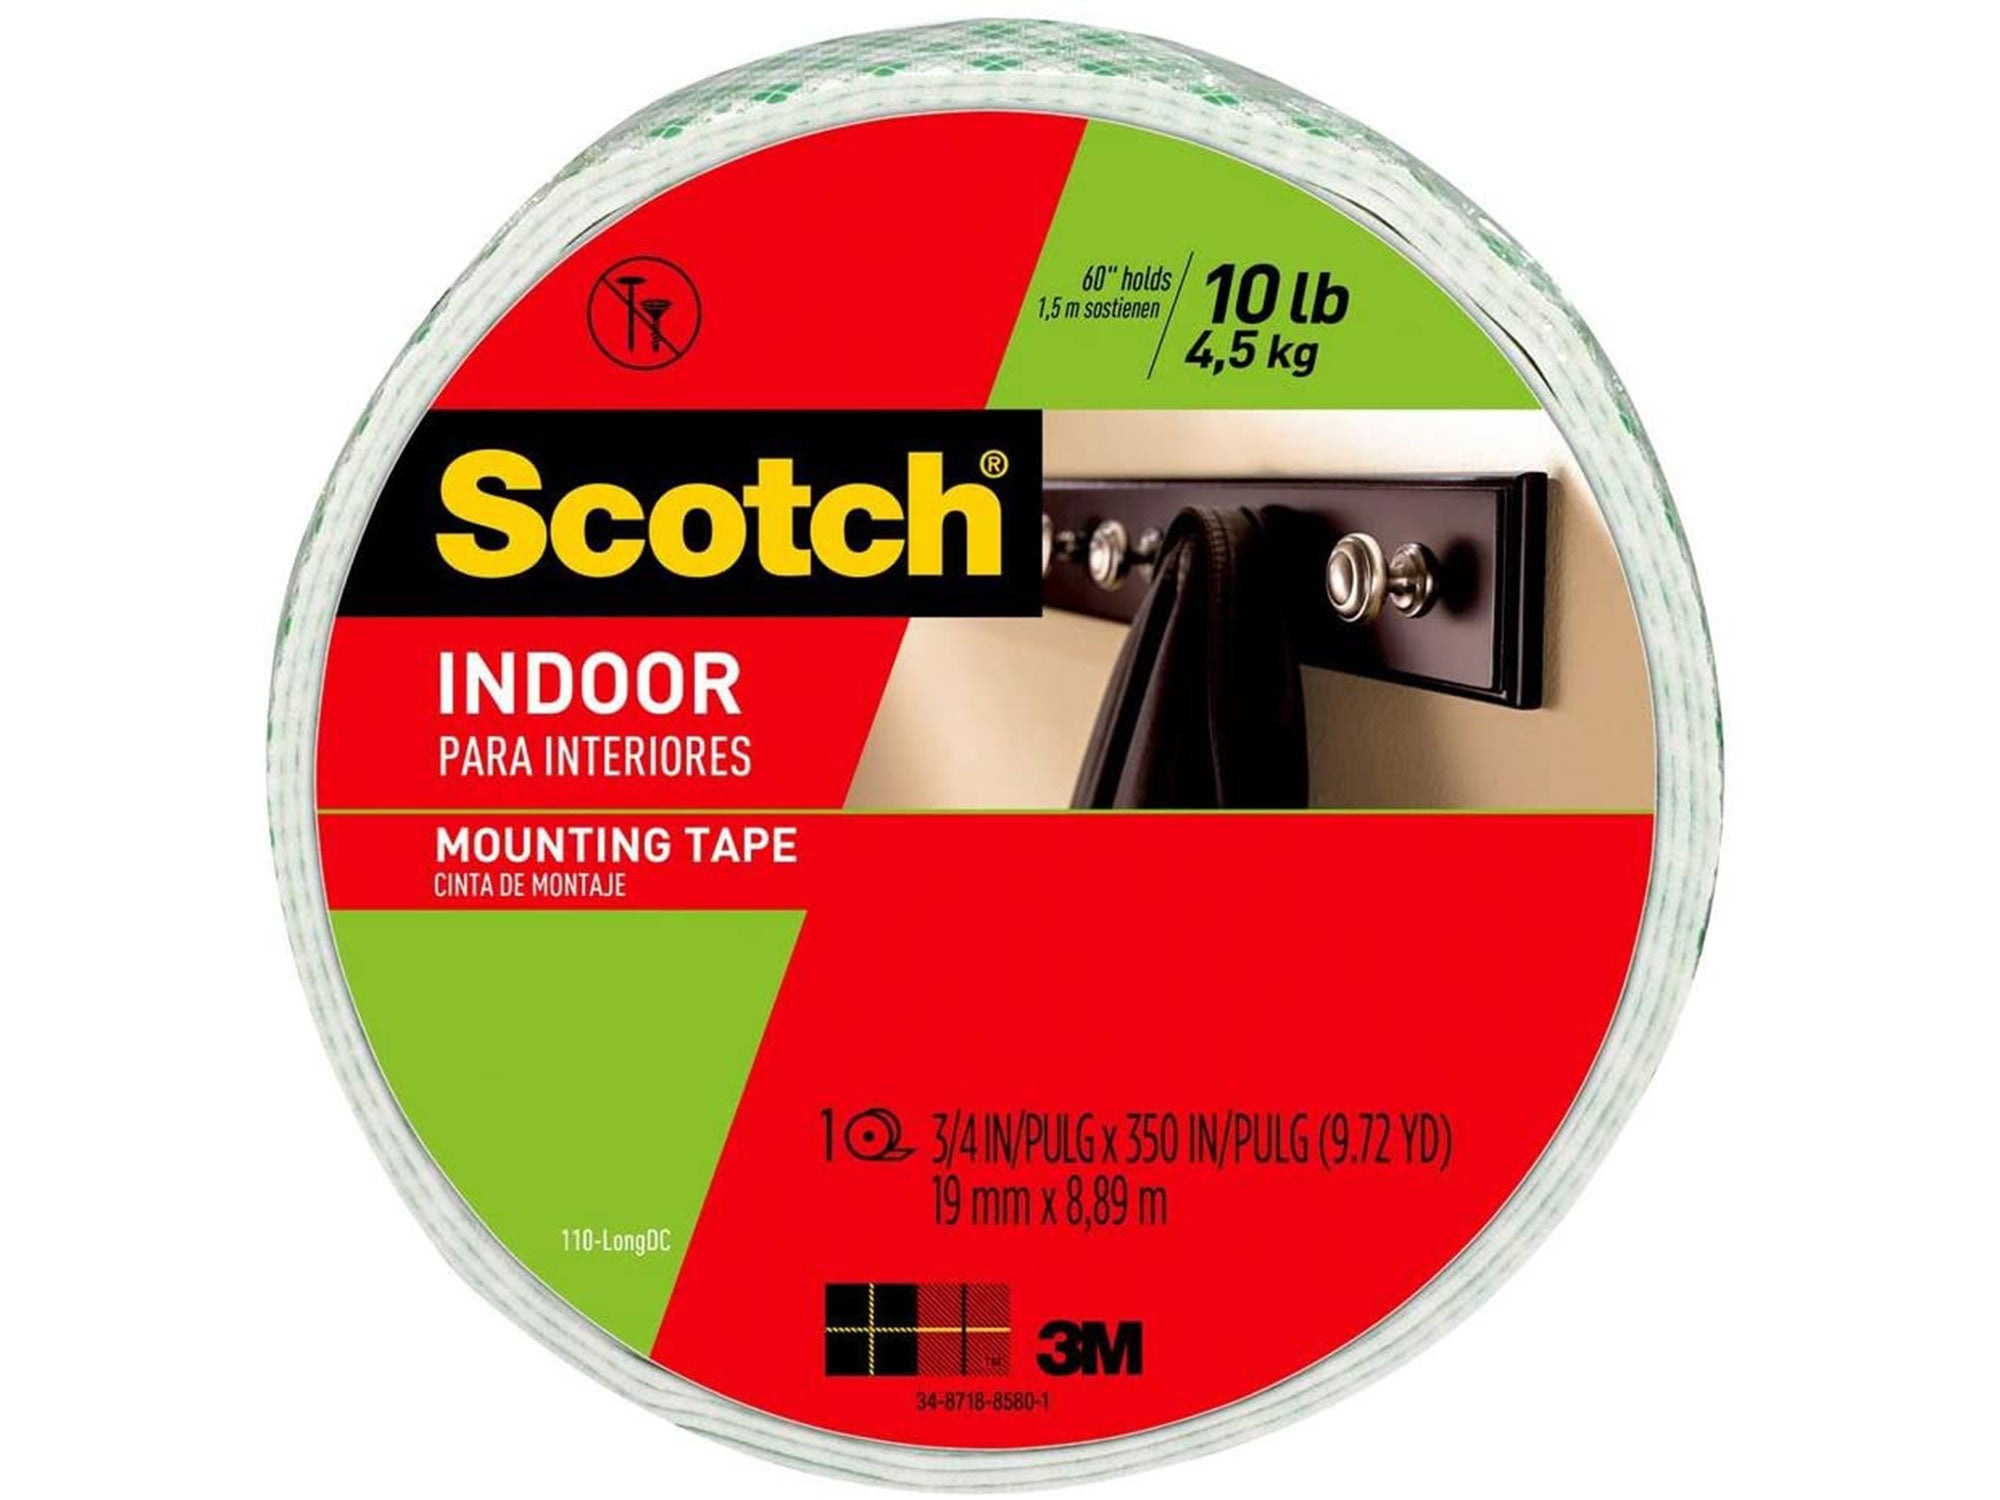 Scotch-Mount Indoor Double-Sided Mounting Tape Mega Roll 110H-Long-DC